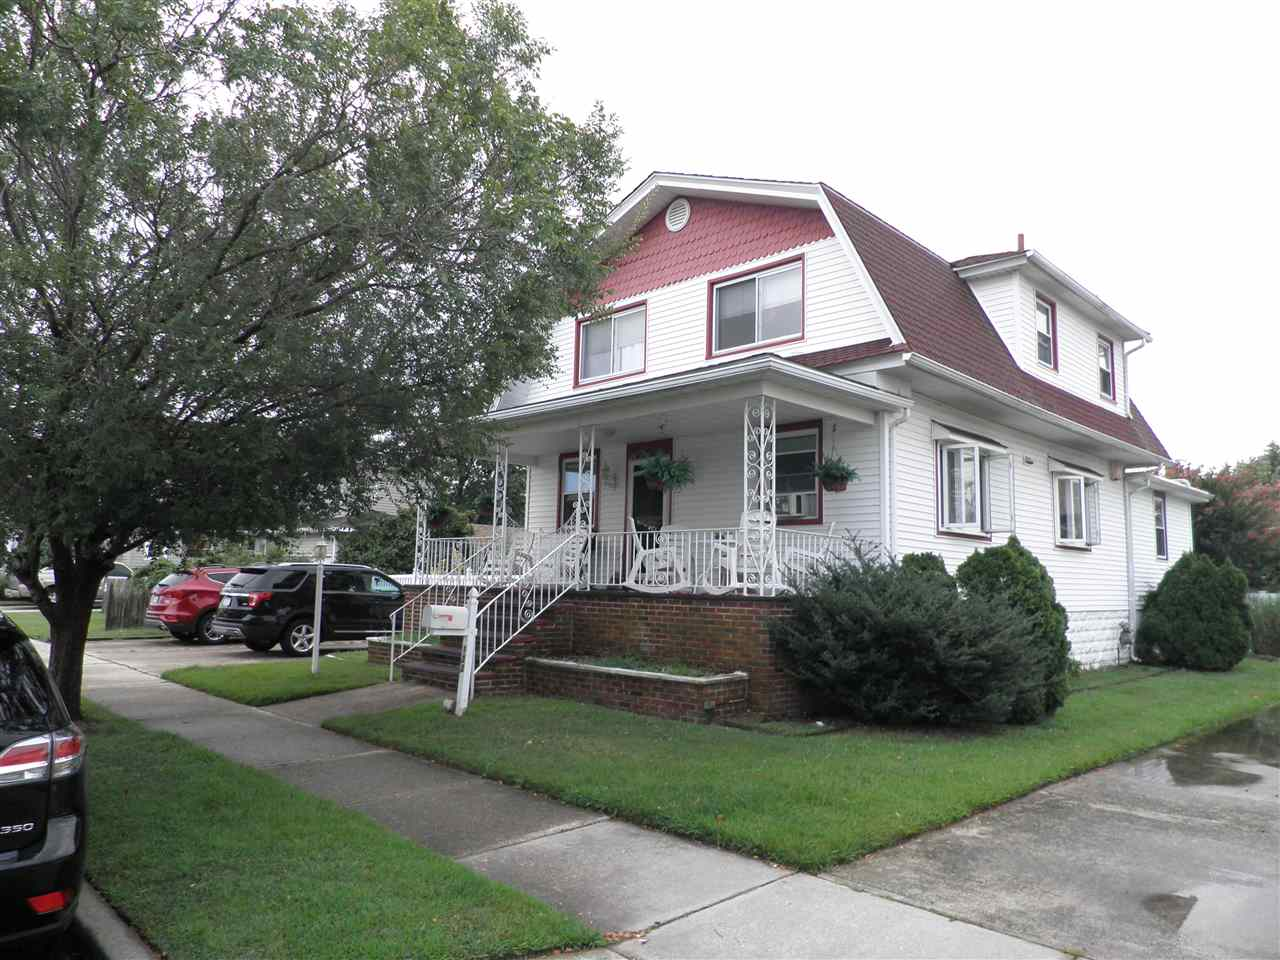 122 E 23rd Avenue, North Wildwood, NJ 08260